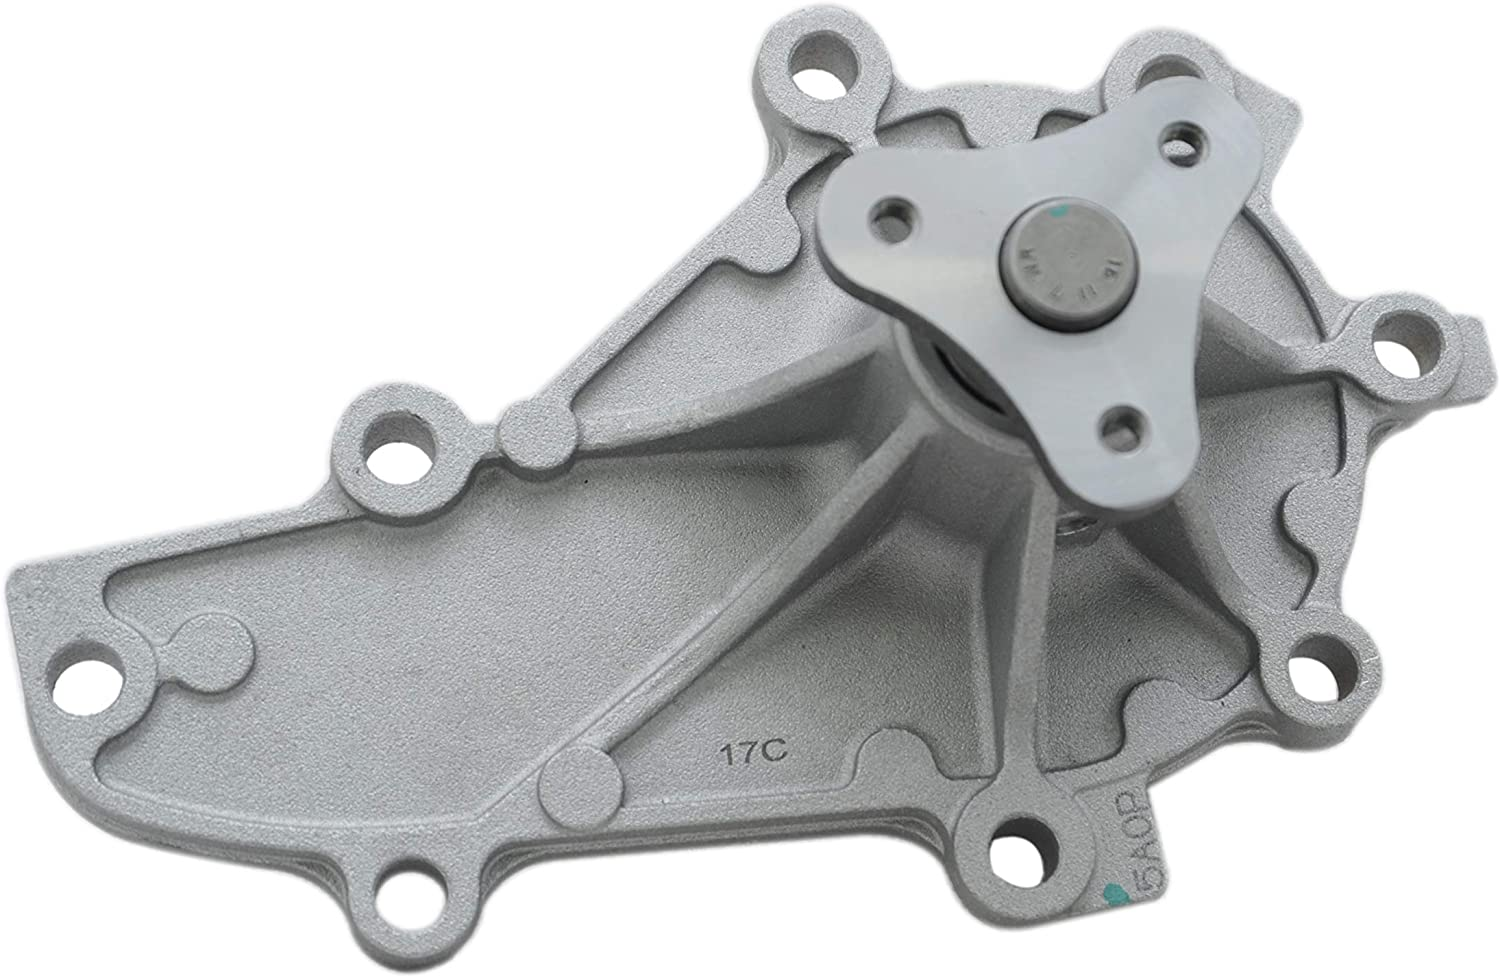 Direct stock discount Water Opening large release sale Pump for AW6156 125-2430 fits WP-2136 08-04 41187 MAZDA